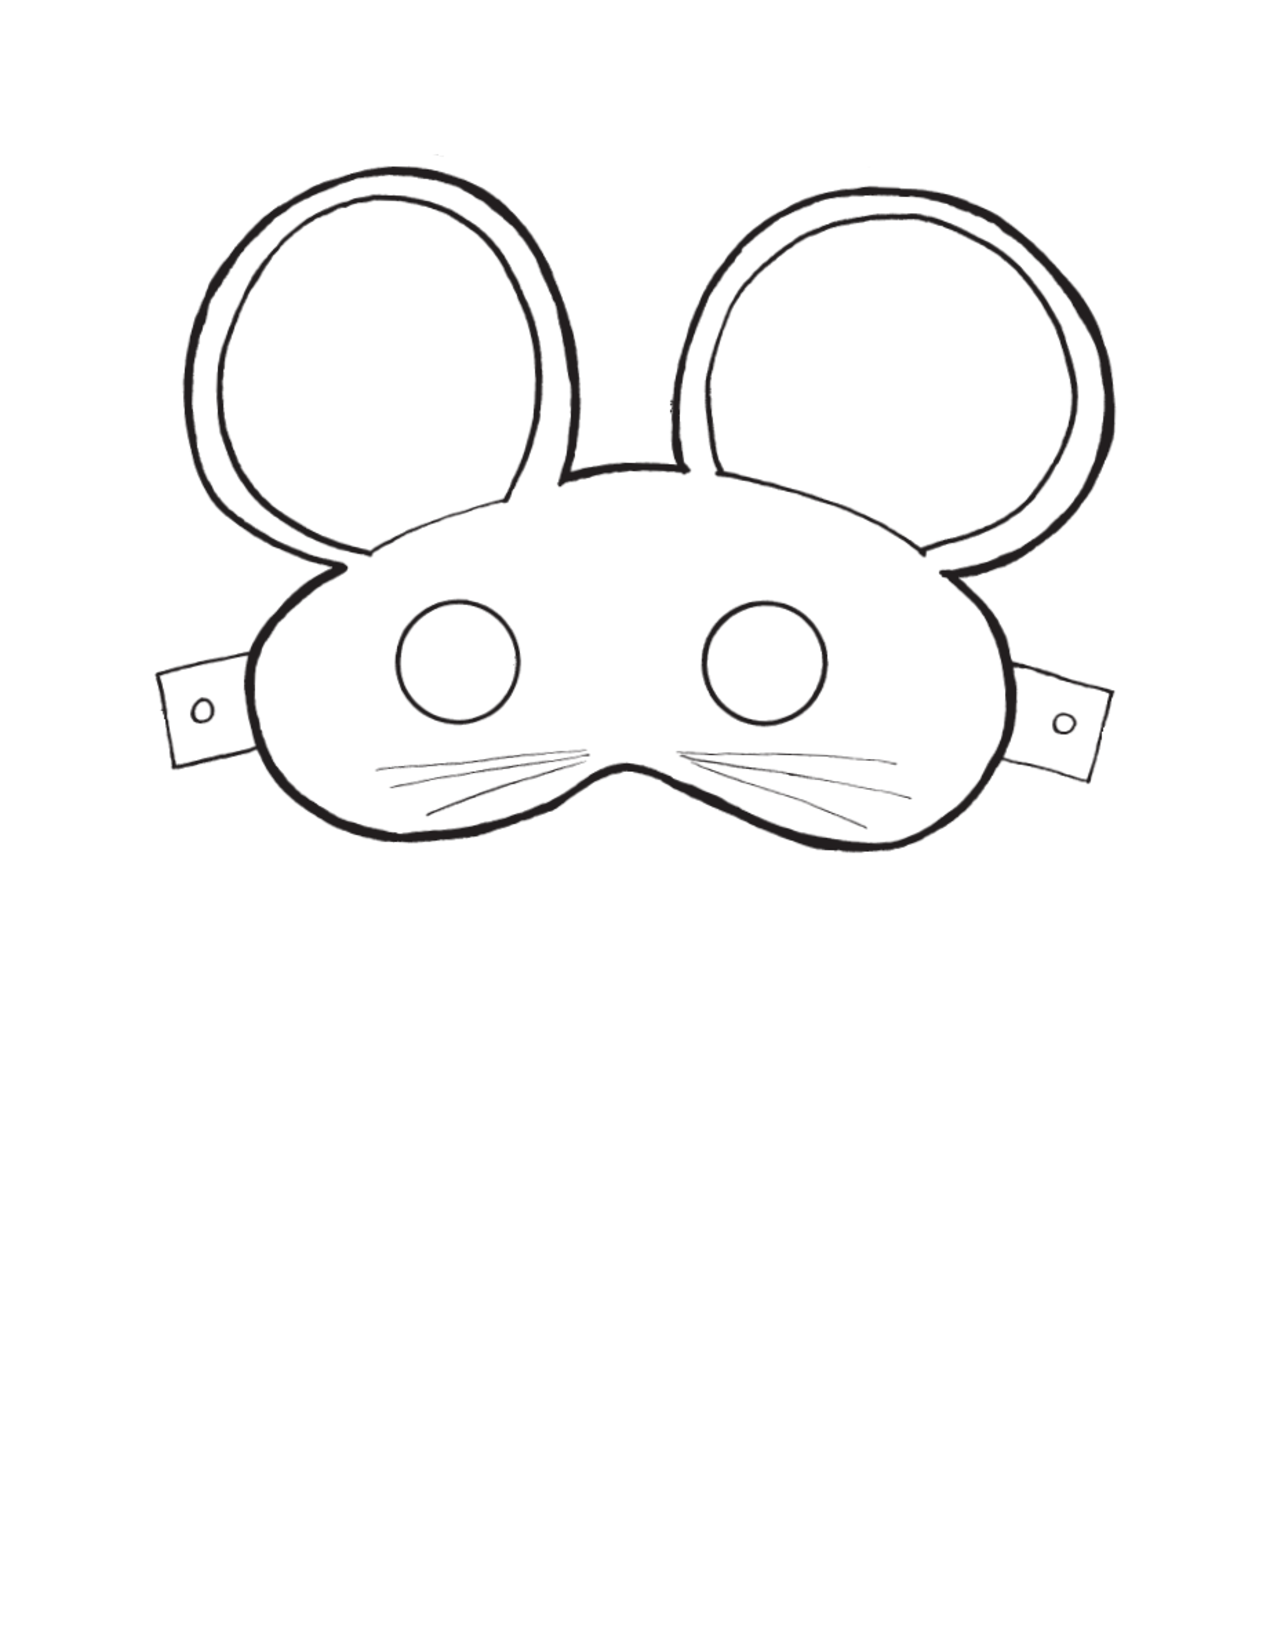 Free coloring pages hamsters - Printable Colouring Pages